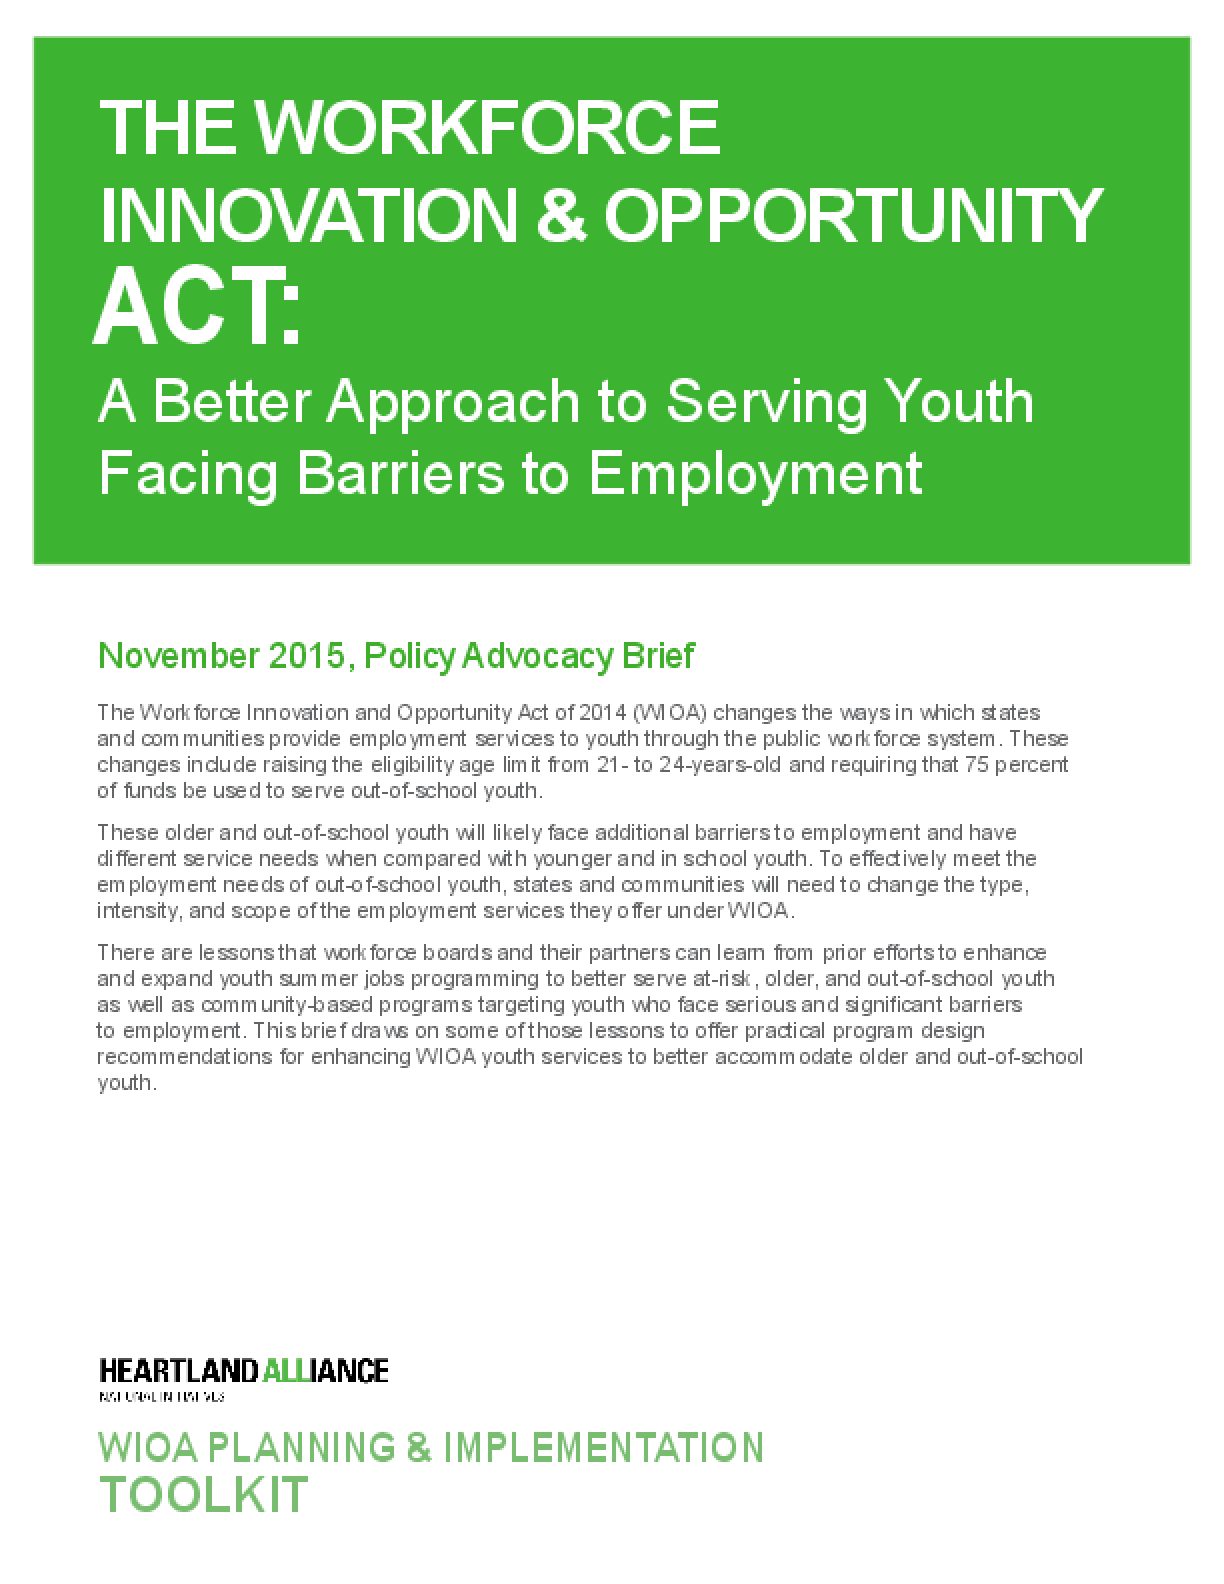 The Workforce Innovation and Opportunity Act: A Better Approach to Serving Youth Facing Barriers to Employment